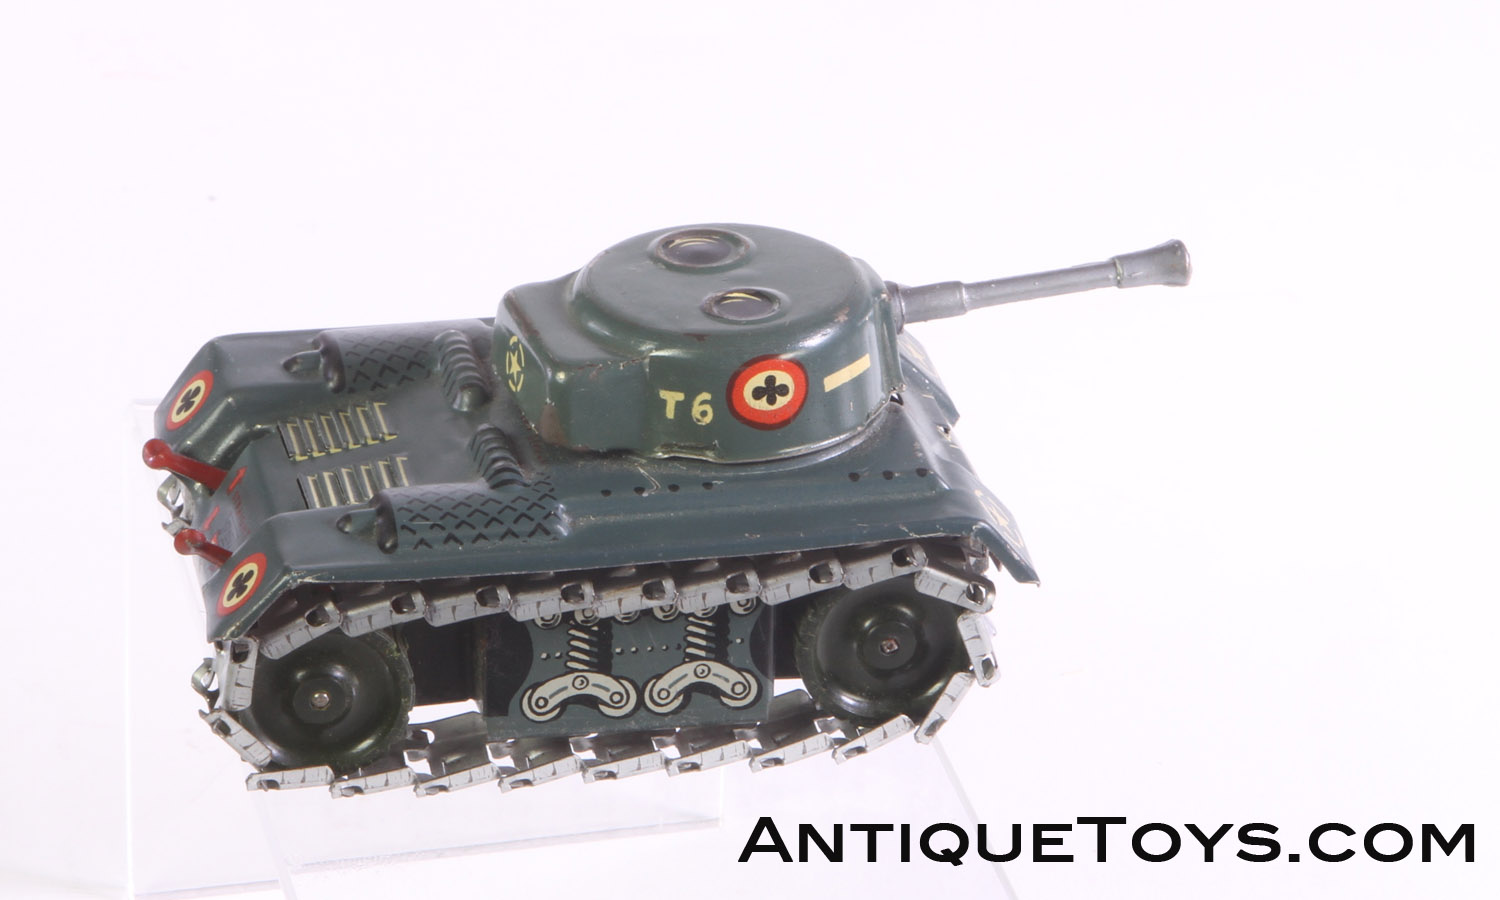 Wood Stoves For Sale >> x-SOLD Tin Tank T6 by Arnold West Germany - Antique Toys ...